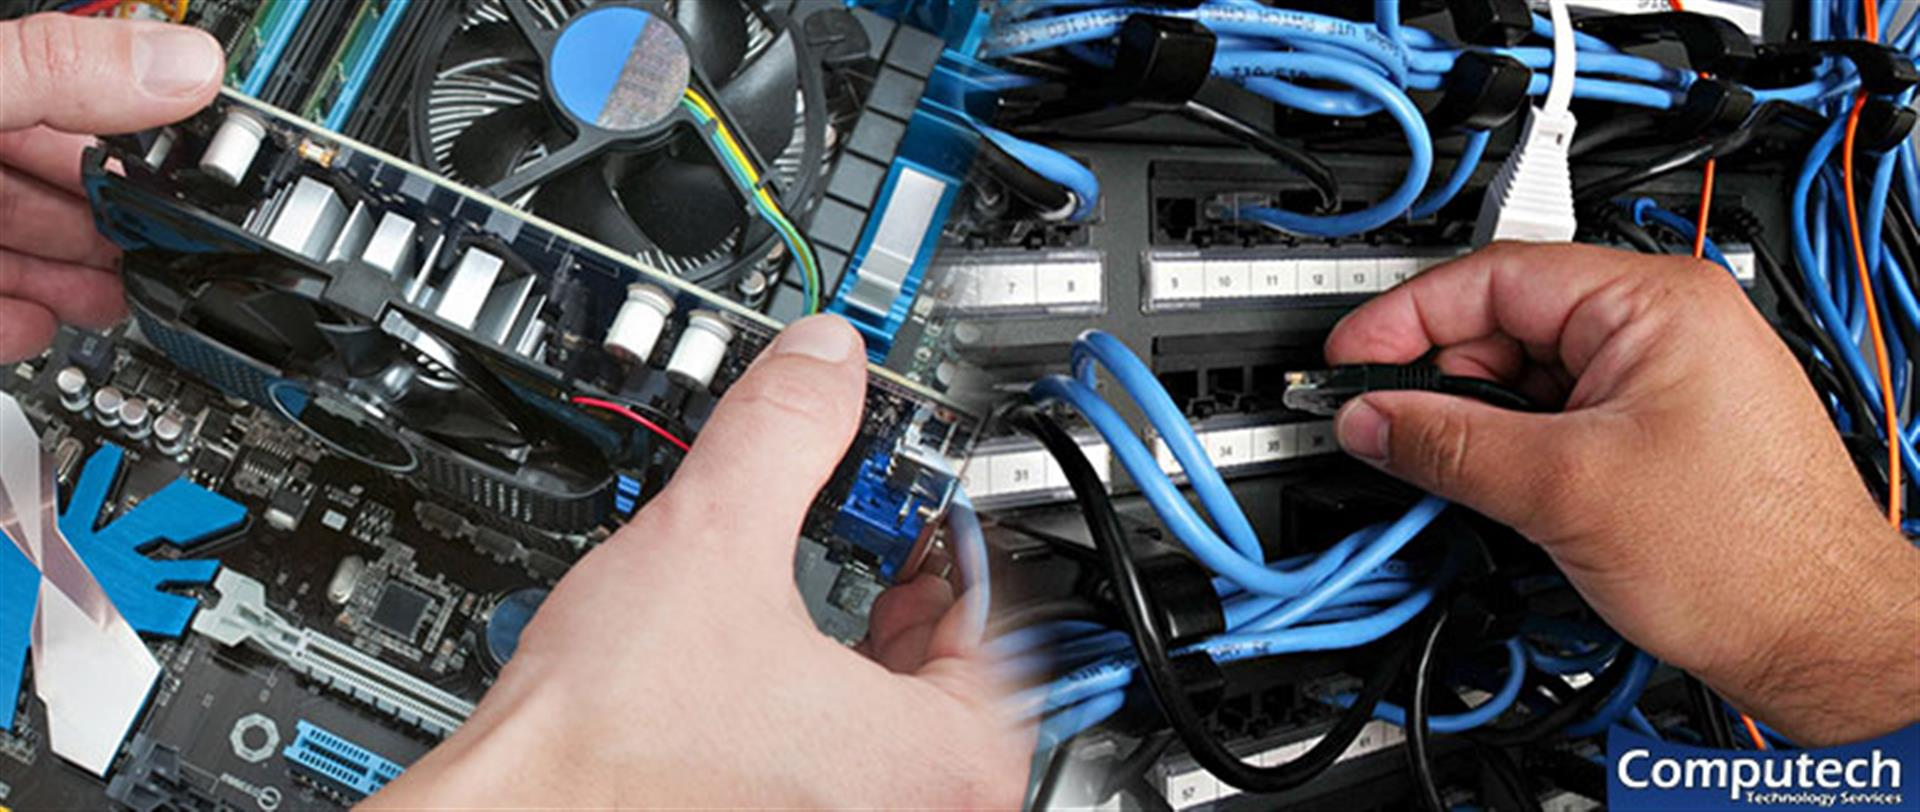 Lawrenceville Georgia On Site PC & Printer Repair, Network, Voice & Data Cabling Contractors